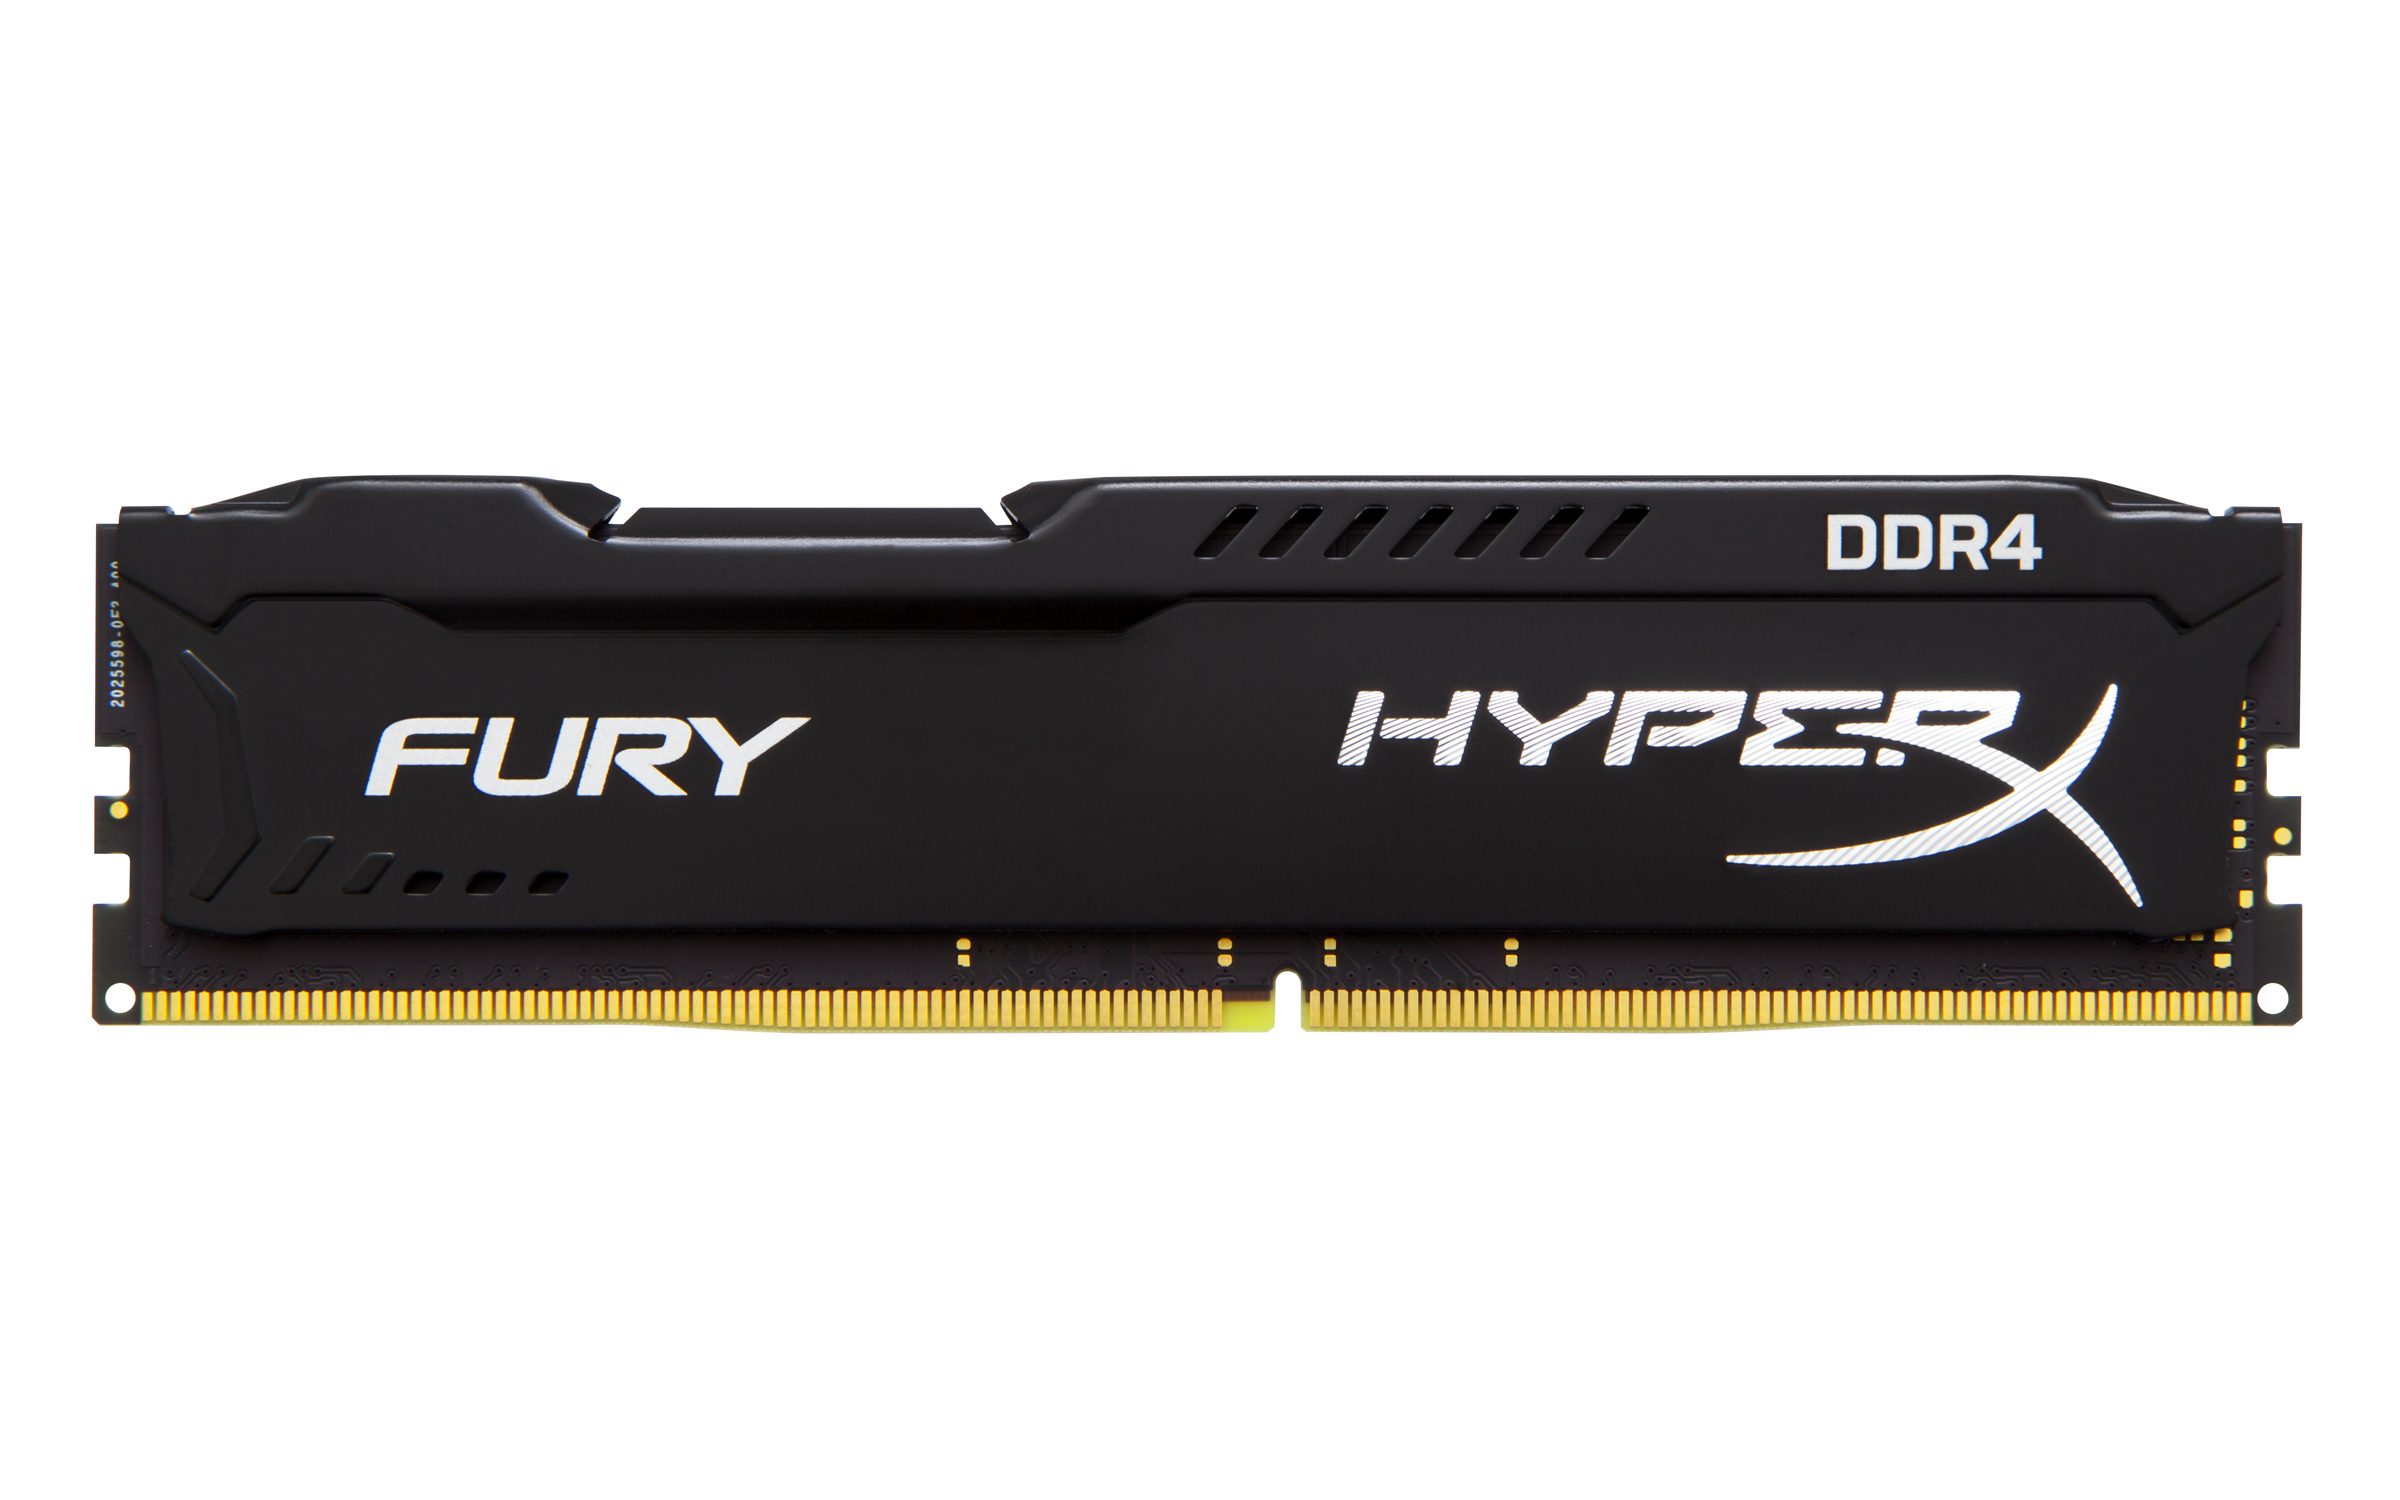 Ram Kingston 4GB 2133Mhz DDR4 CL14 DIMM Fury HyperX Black